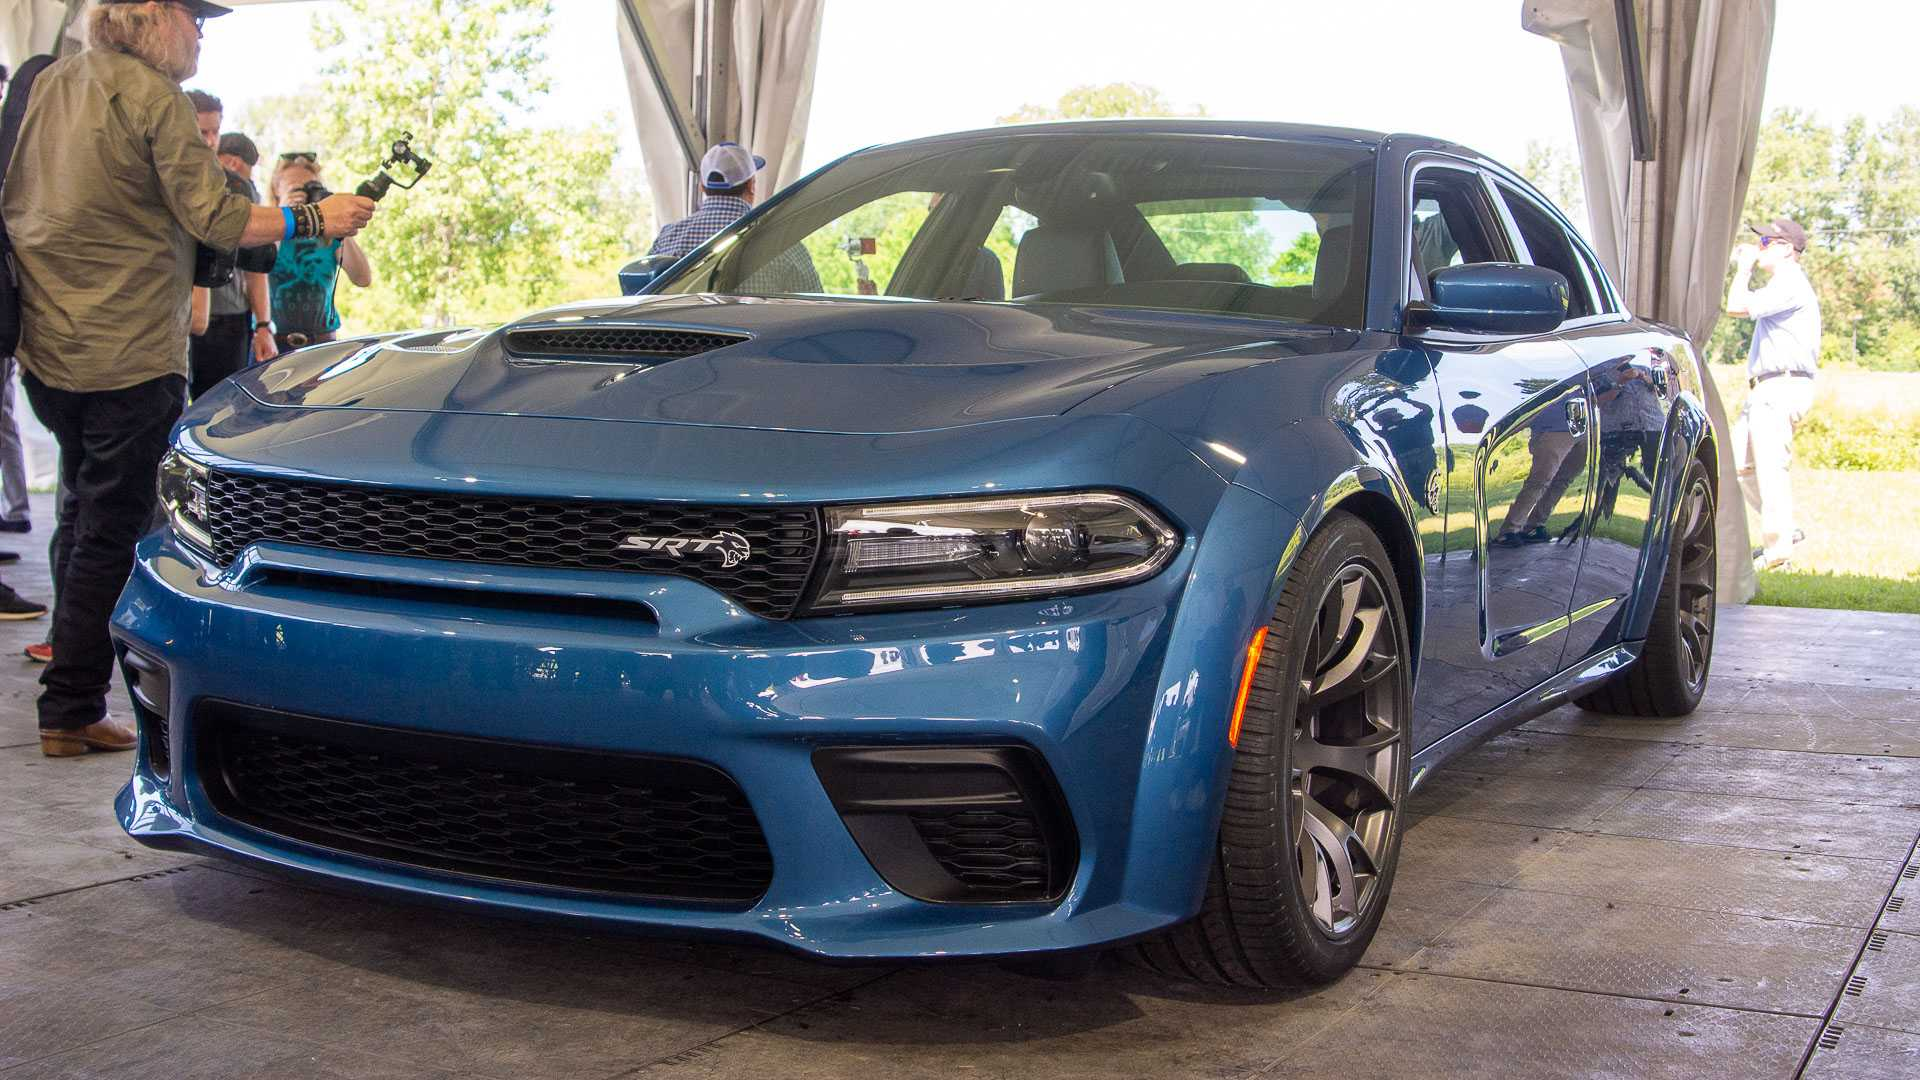 75 A Pictures Of 2020 Dodge Charger Rumors